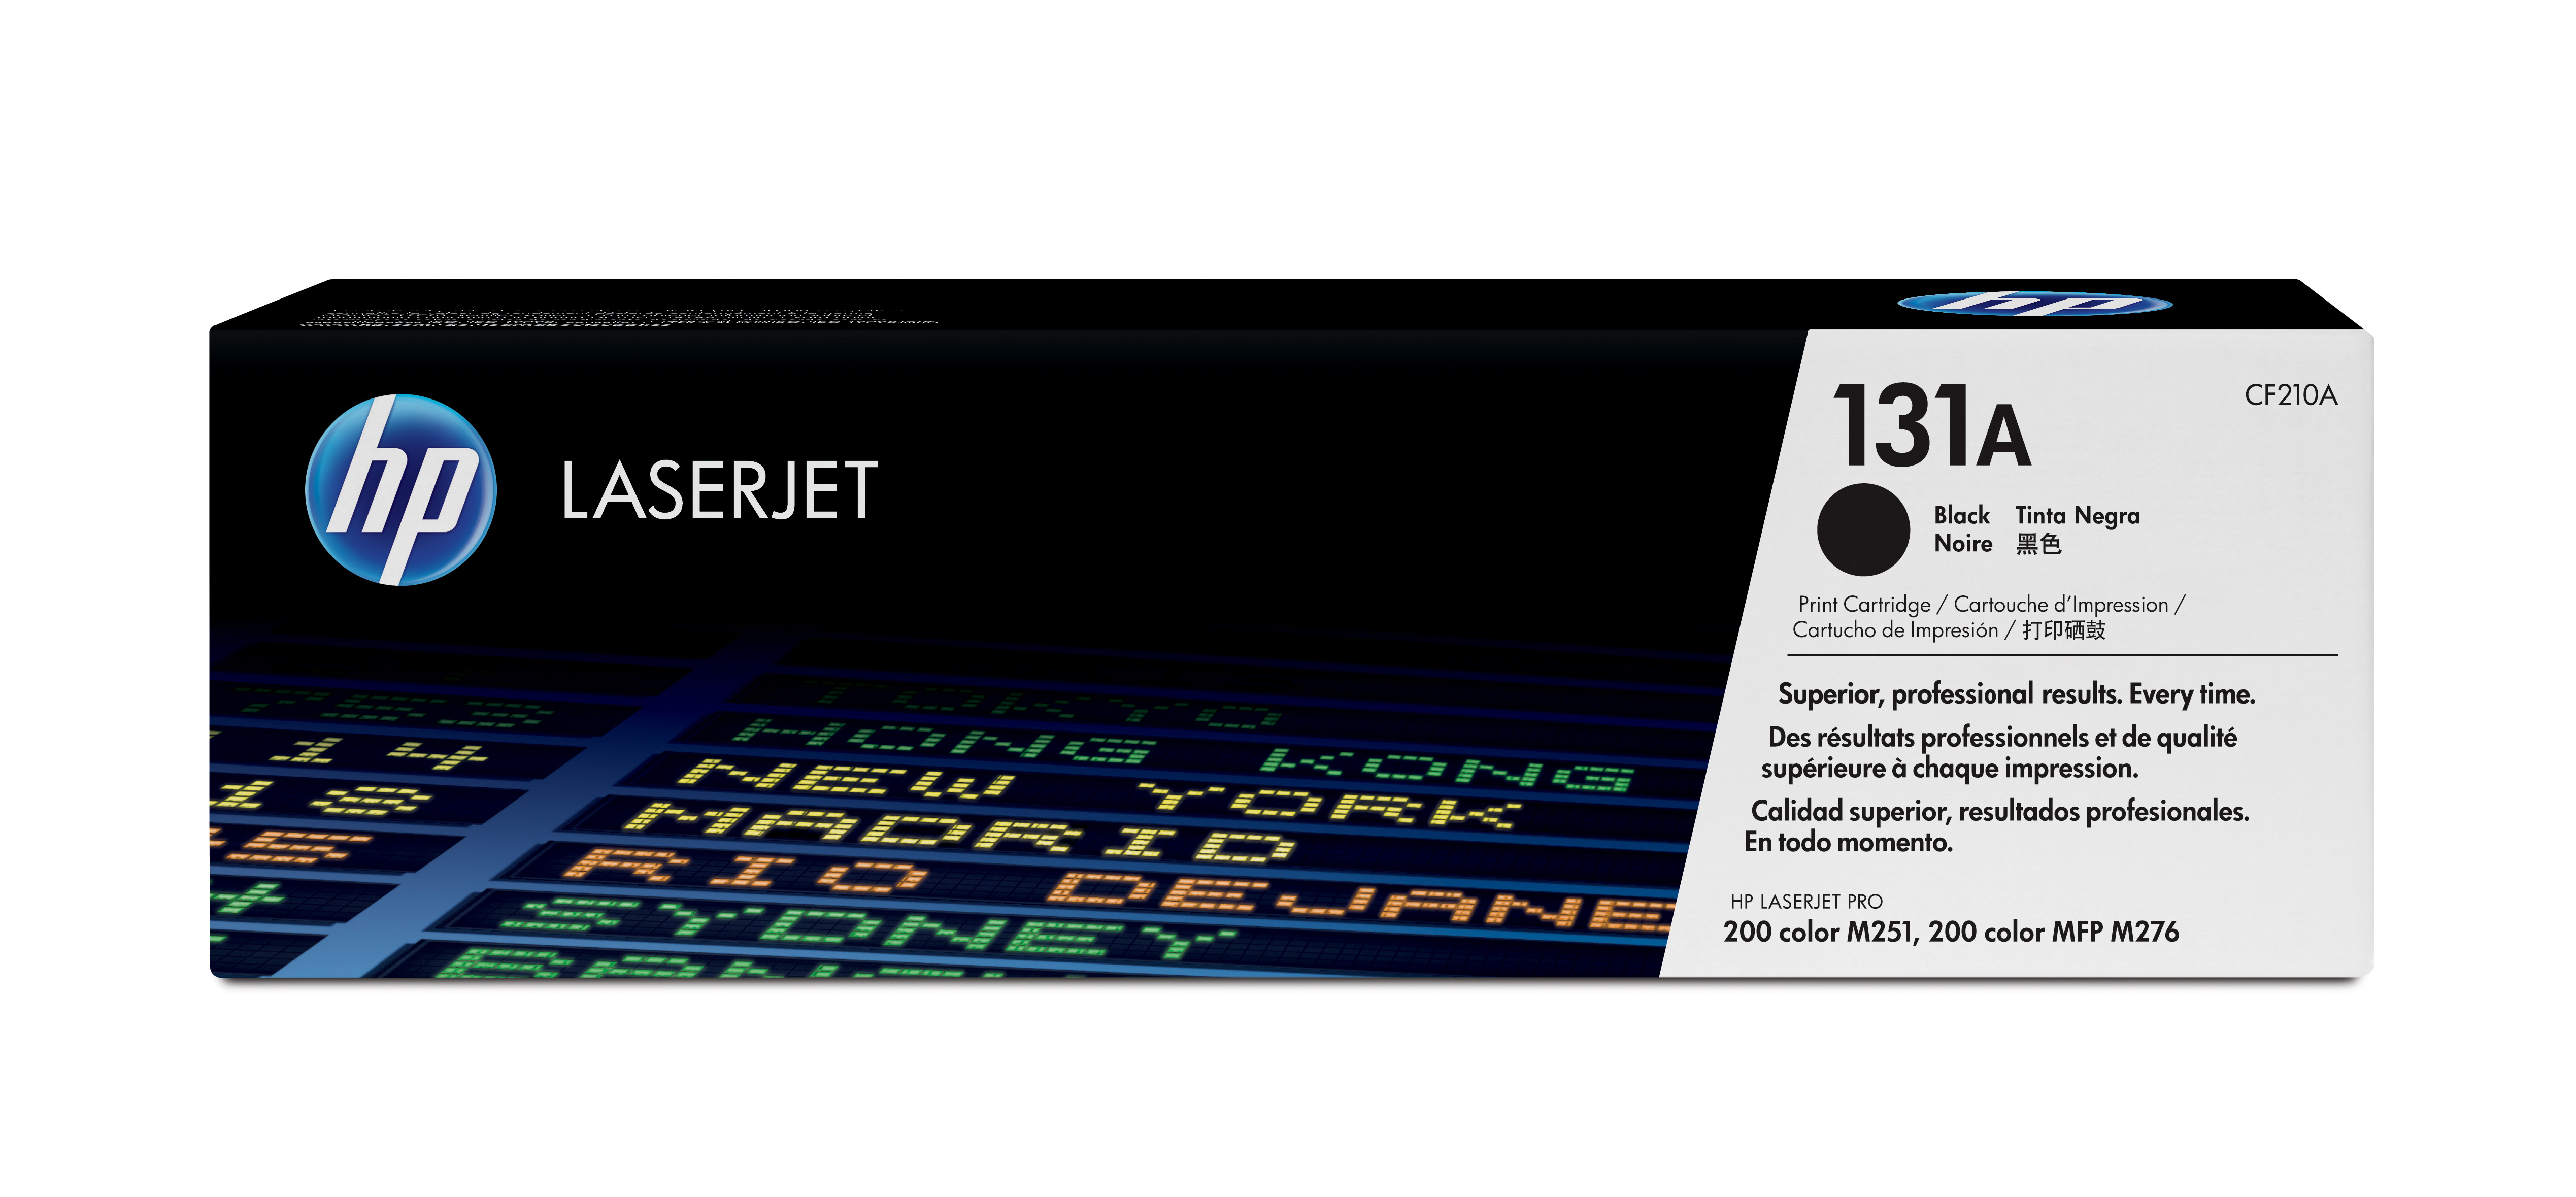 HP 131A Black Toner Cartridge CF210A